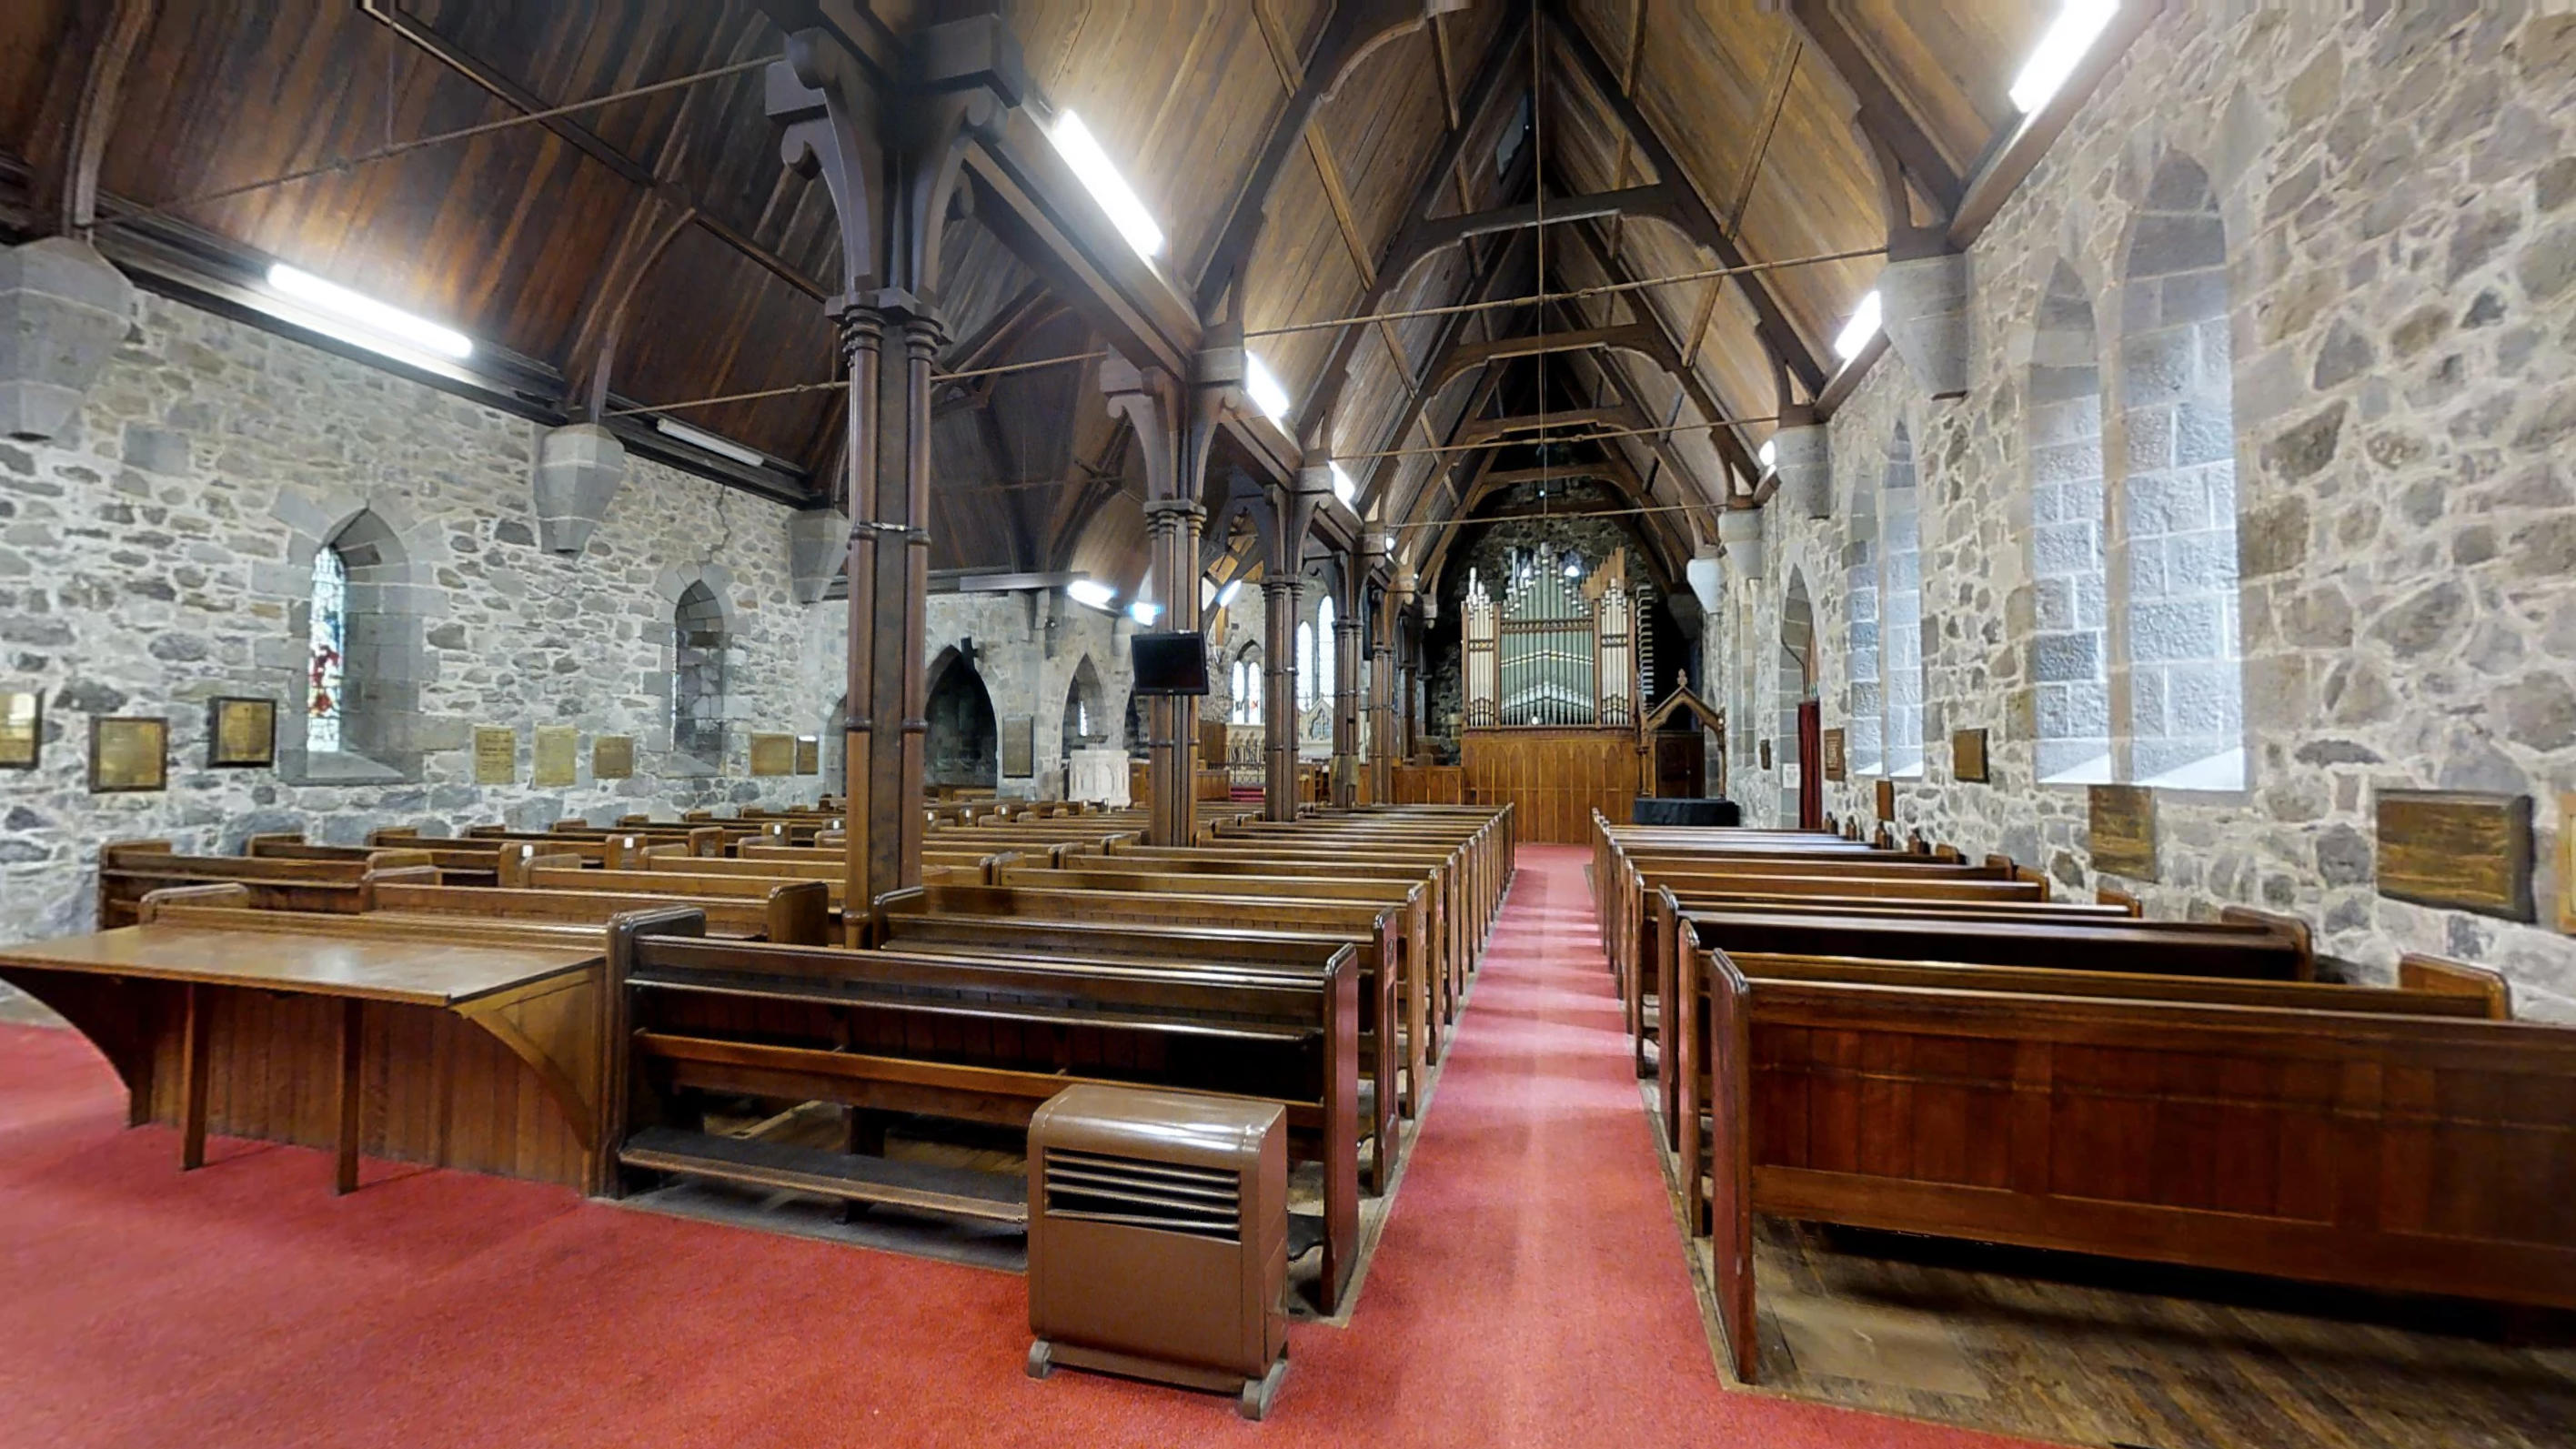 The Taranaki Cathedral Church of St. Mary